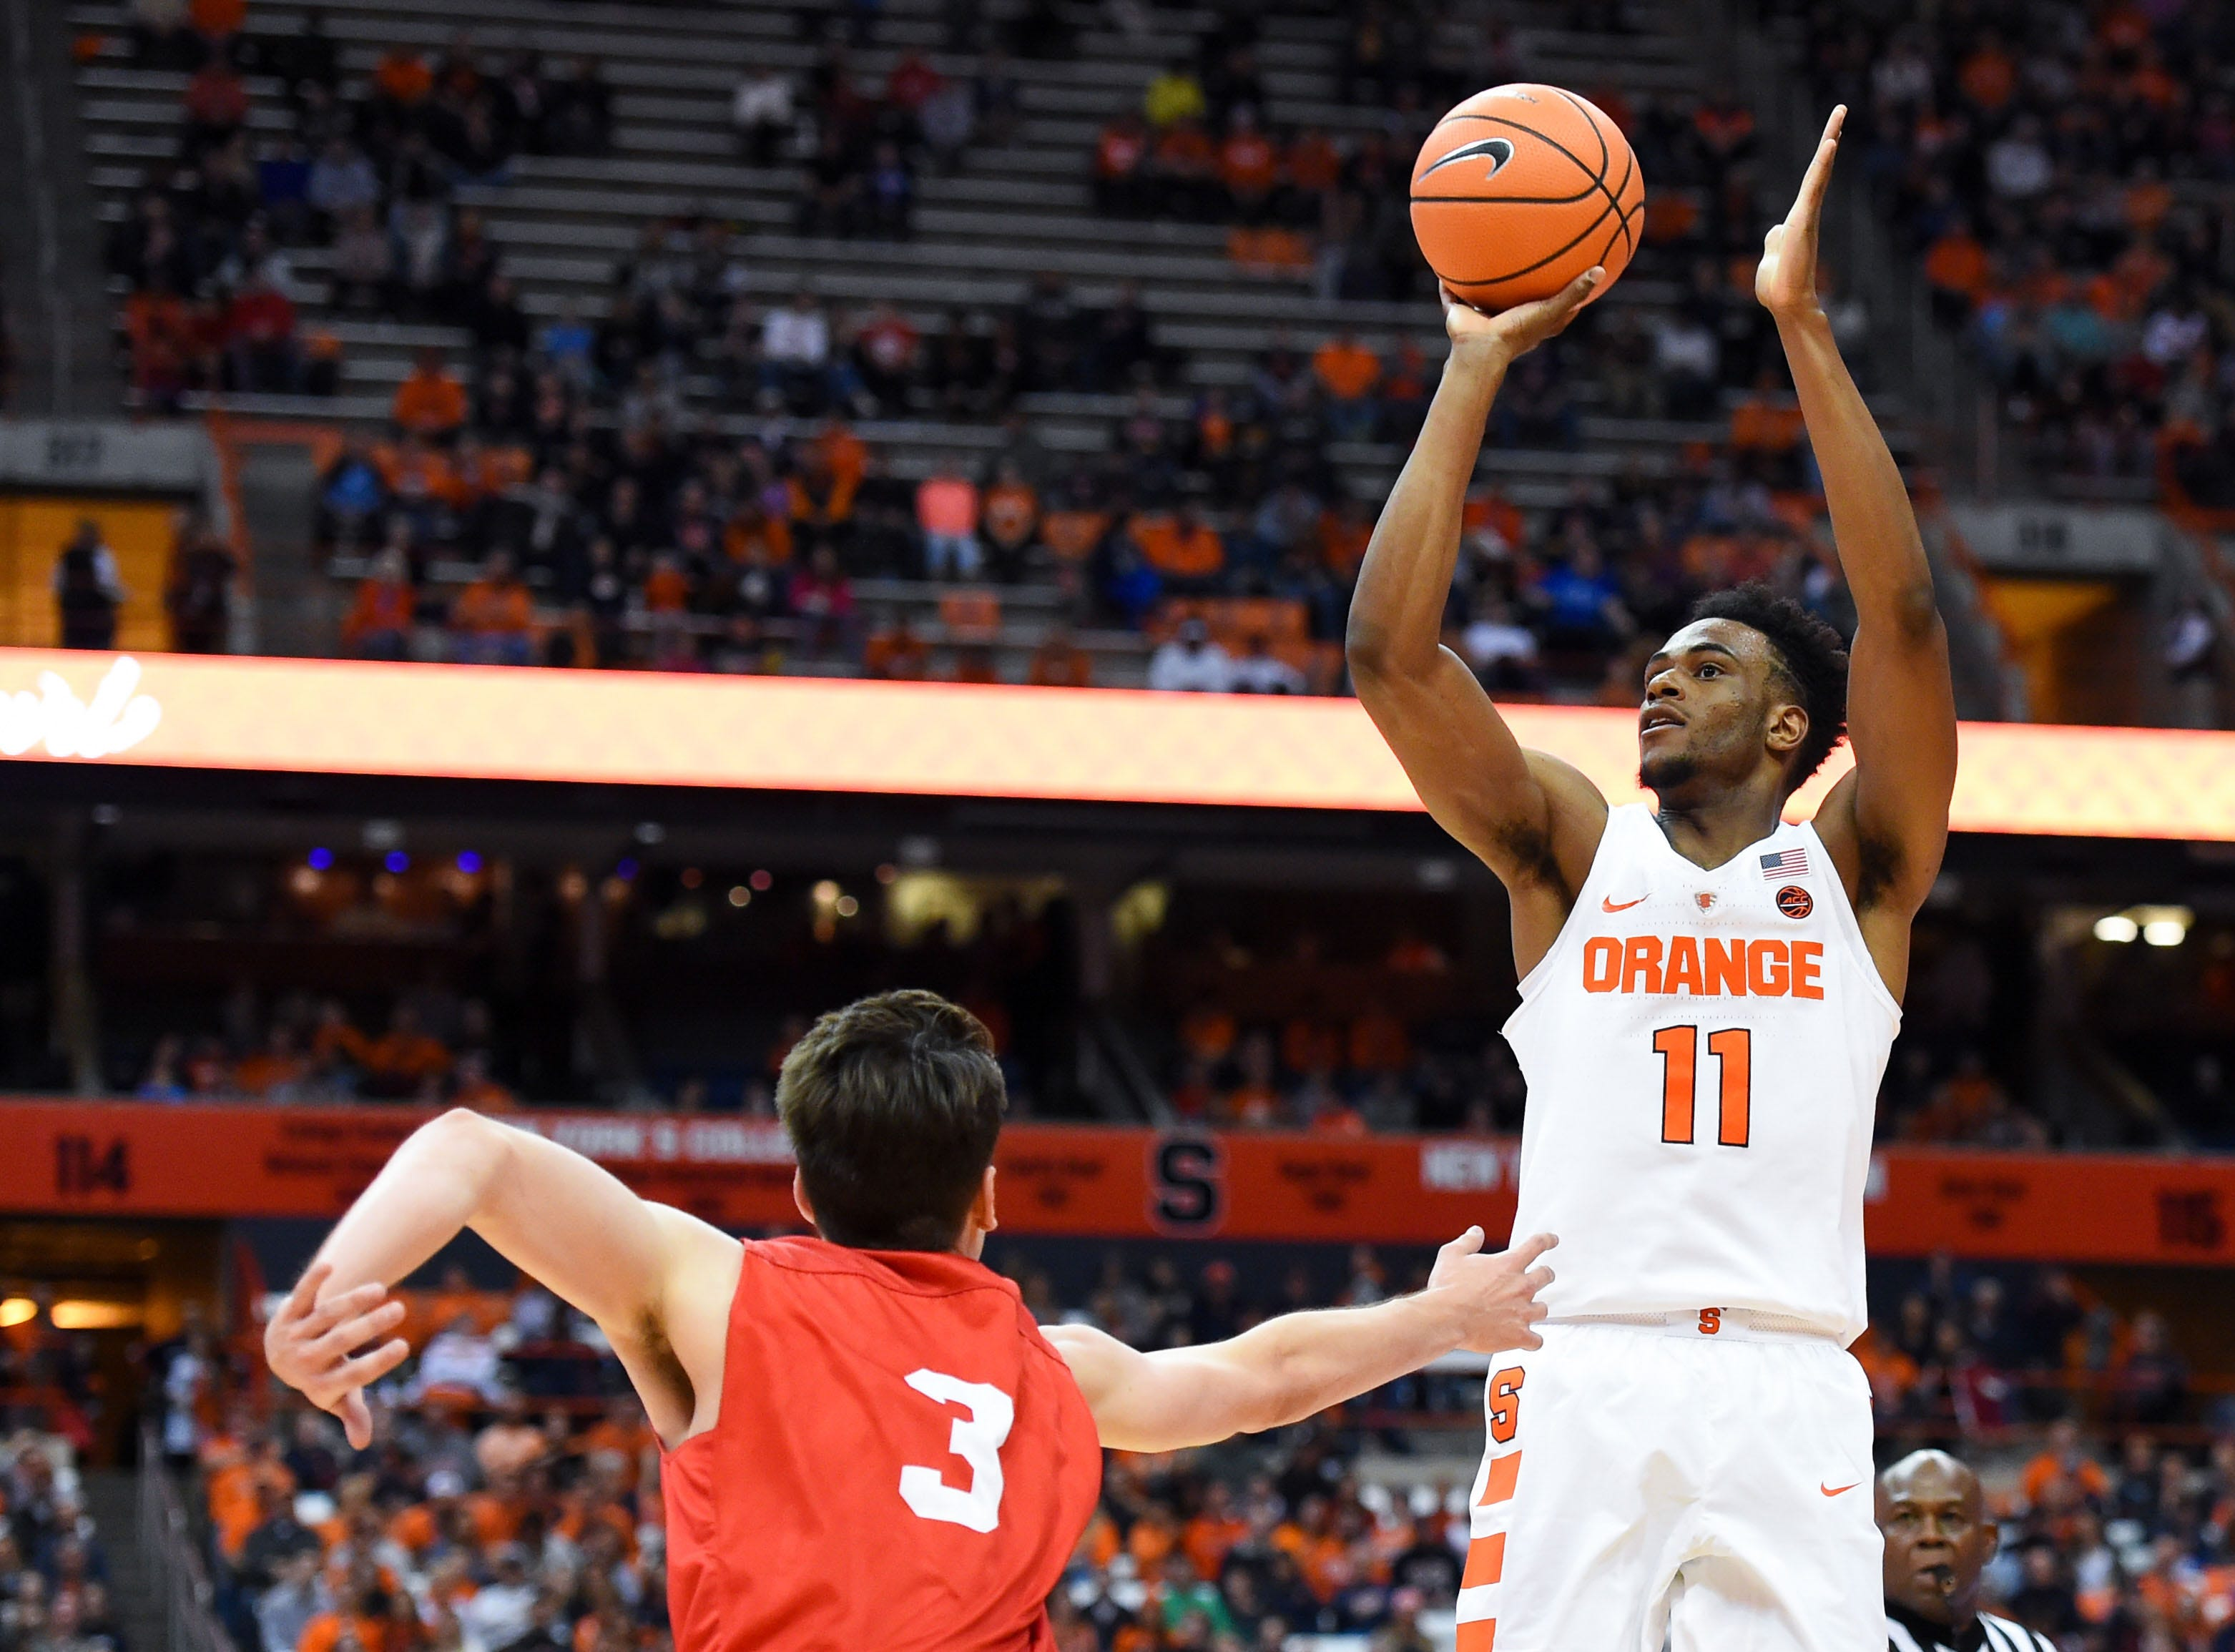 Nov 10, 2017; Syracuse, NY, USA; Syracuse Orange forward Oshae Brissett (11) shoots the ball over Cornell Big Red forward Jimmy Boeheim (3) during the second half at the Carrier Dome. Mandatory Credit: Rich Barnes-USA TODAY Sports